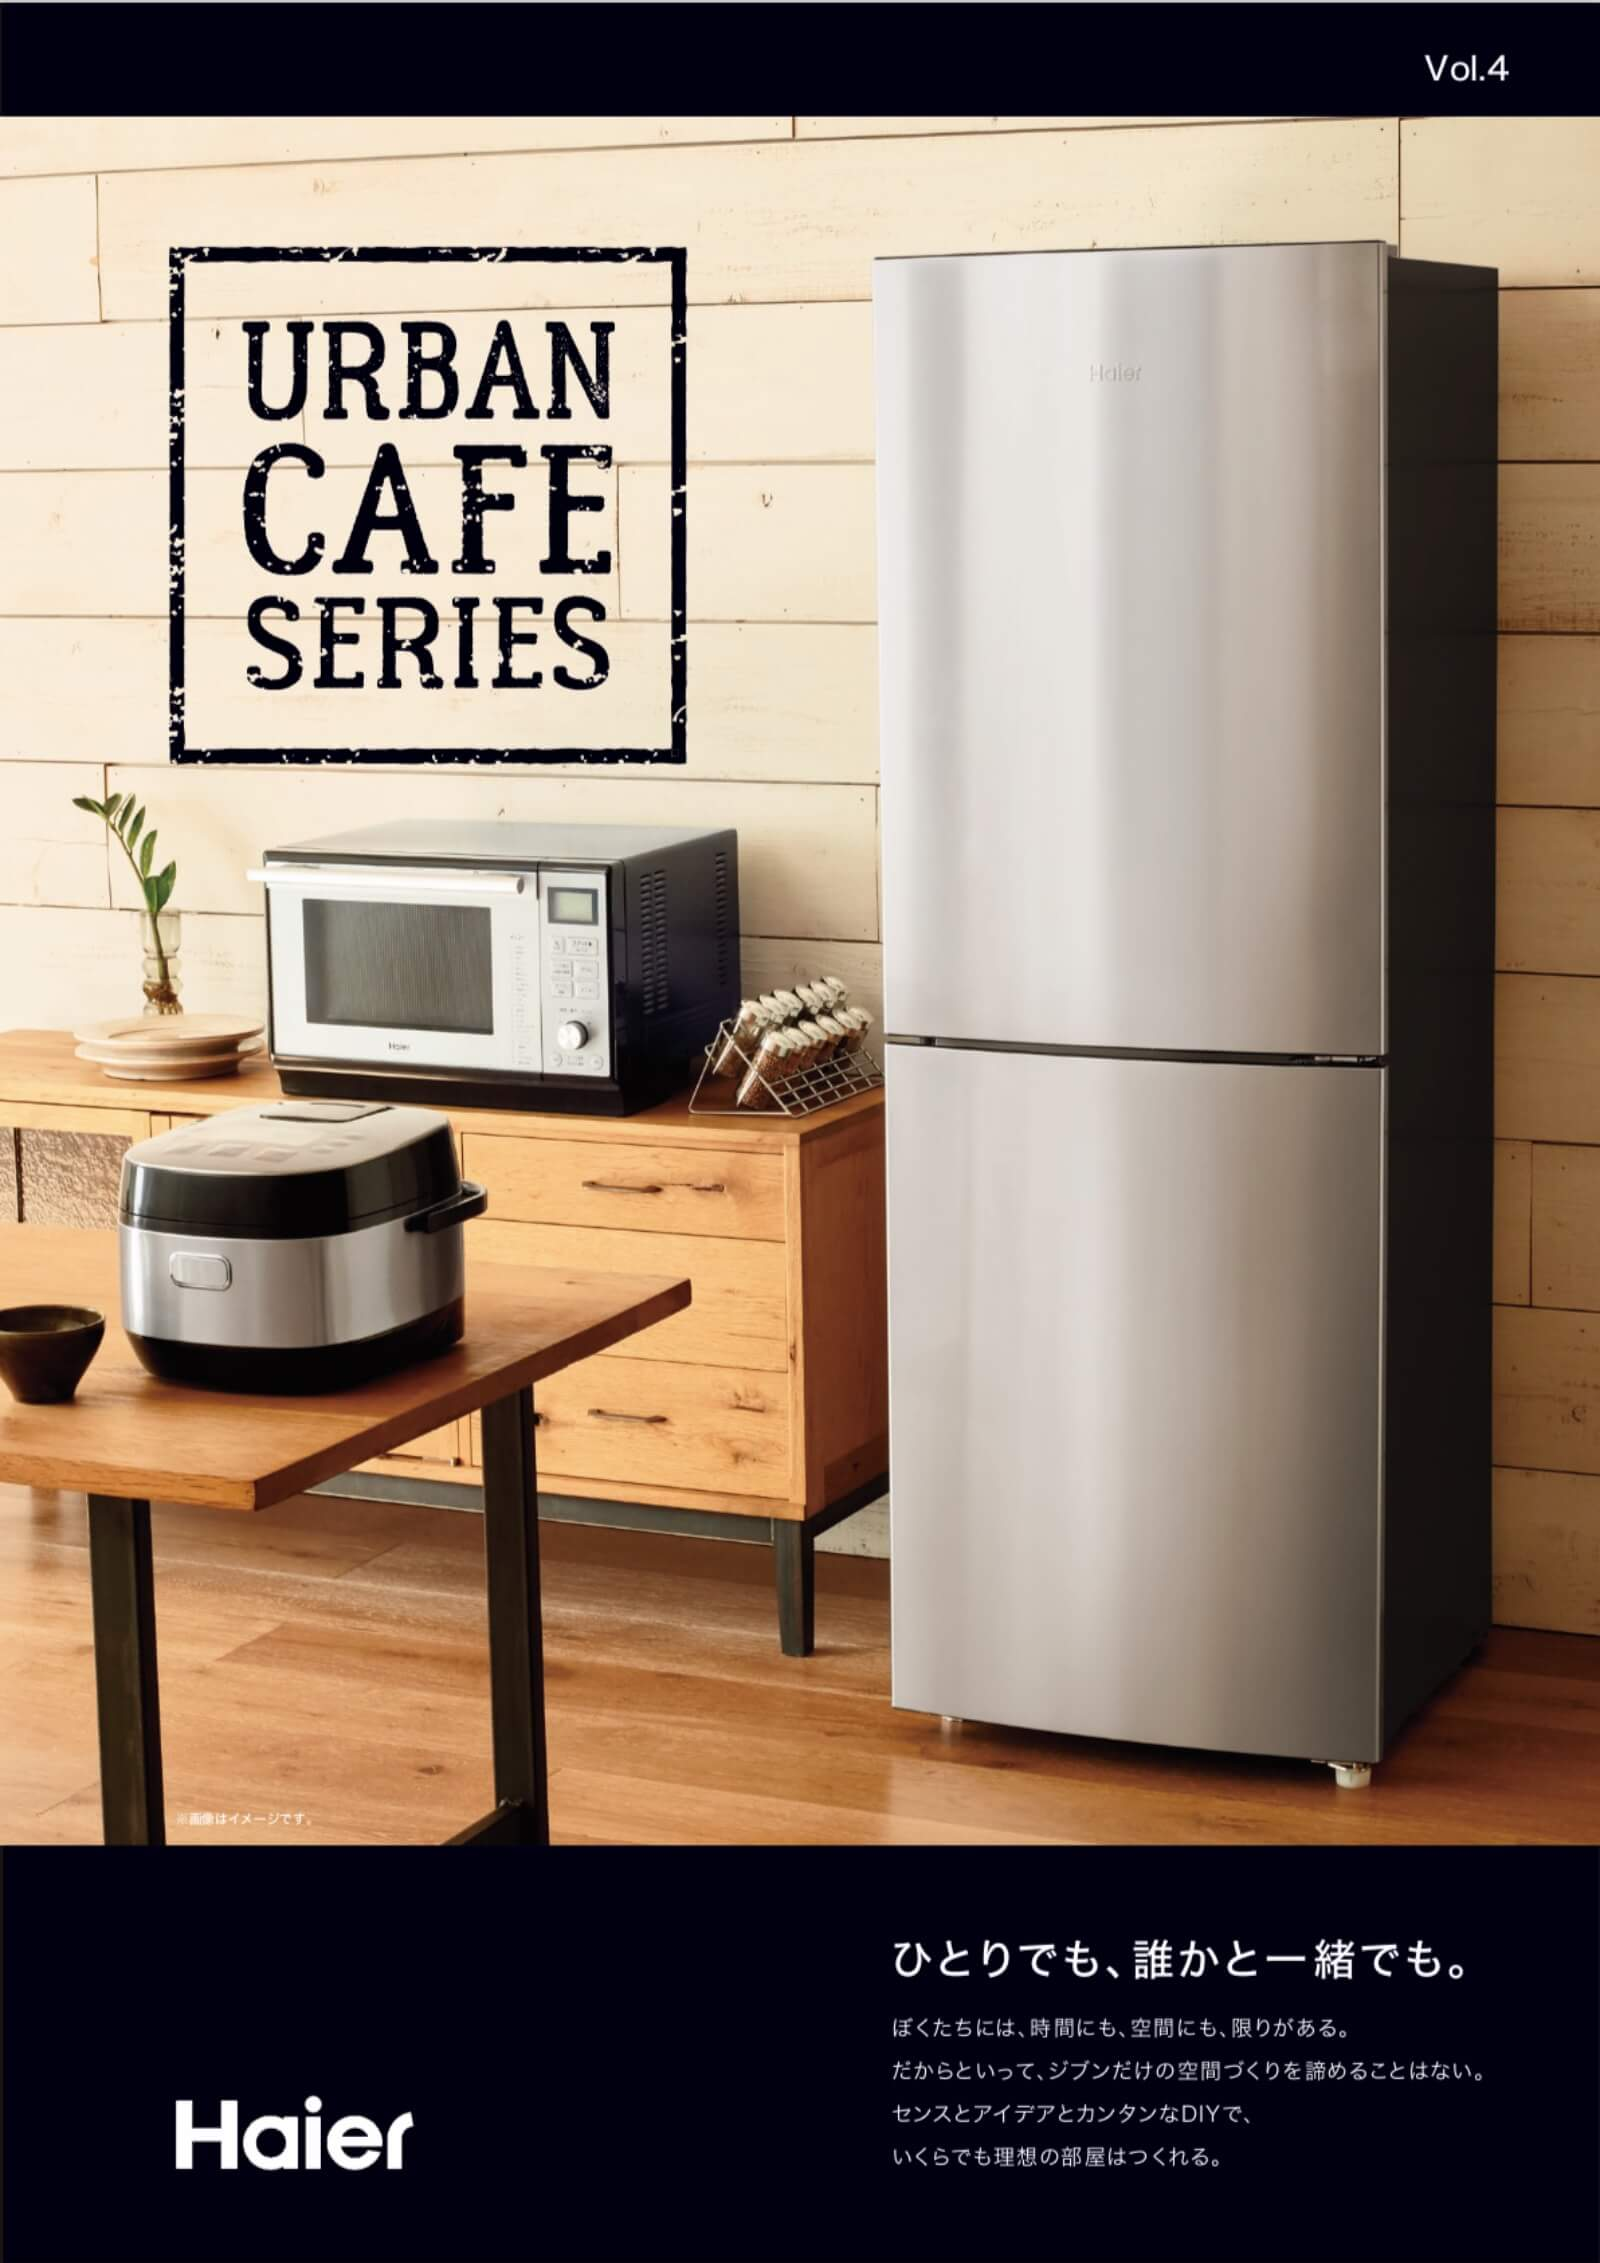 Haier URBAN CAFE SERIES__0